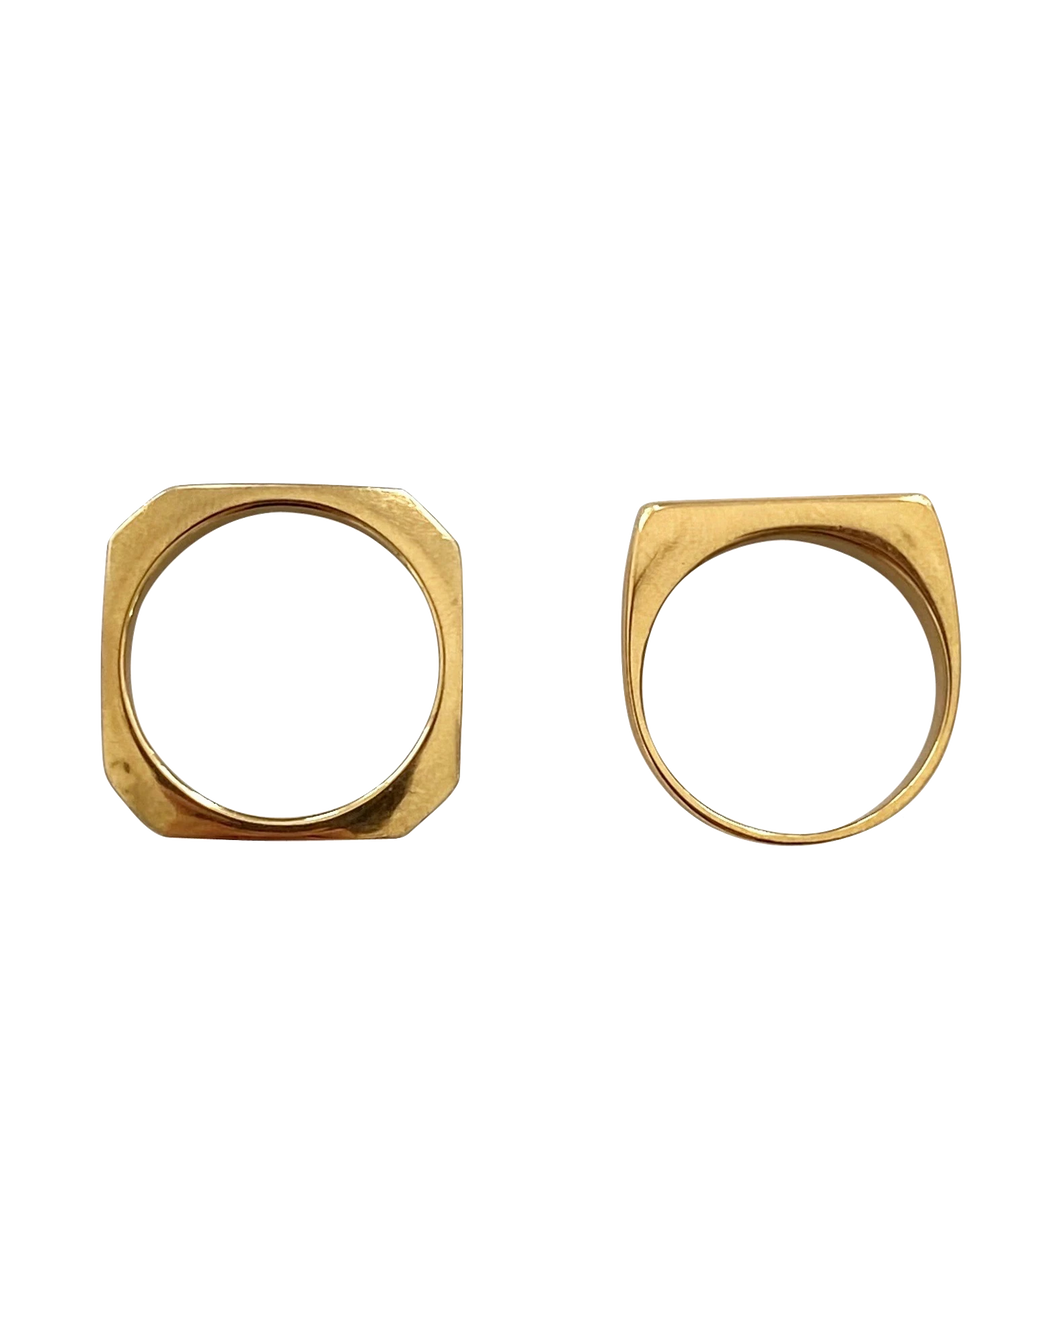 Hendrix Ring Stack - Set of 2 Gold